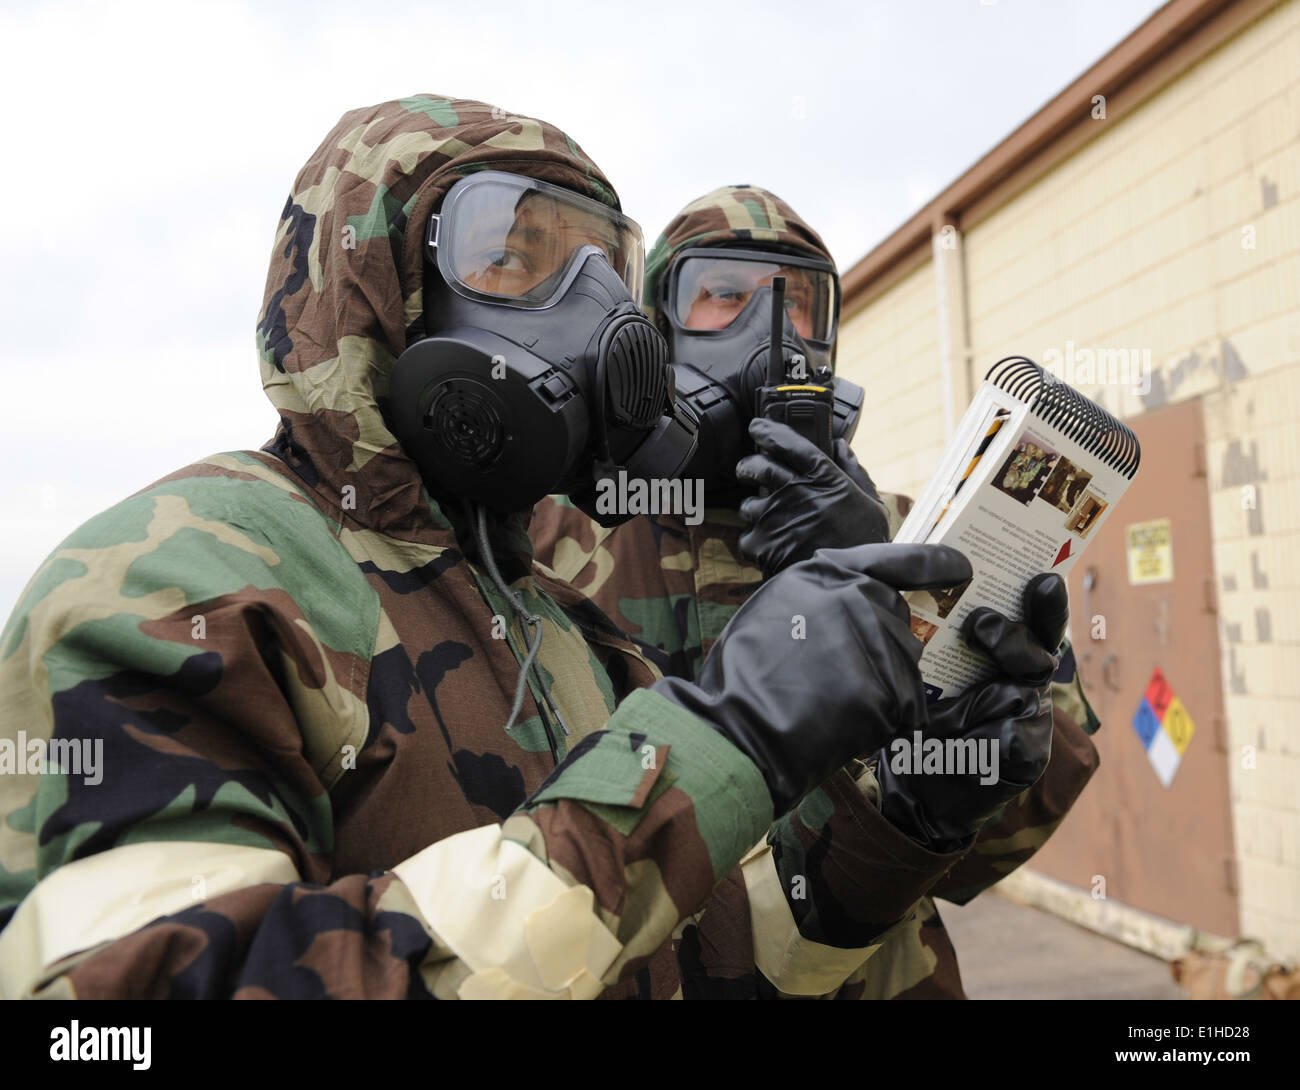 U.S. Airmen refer to the Airman's Manual during the Ability to Survive and Operate (ATSO) exercise at Barksdale Air Force Base, - Stock Image